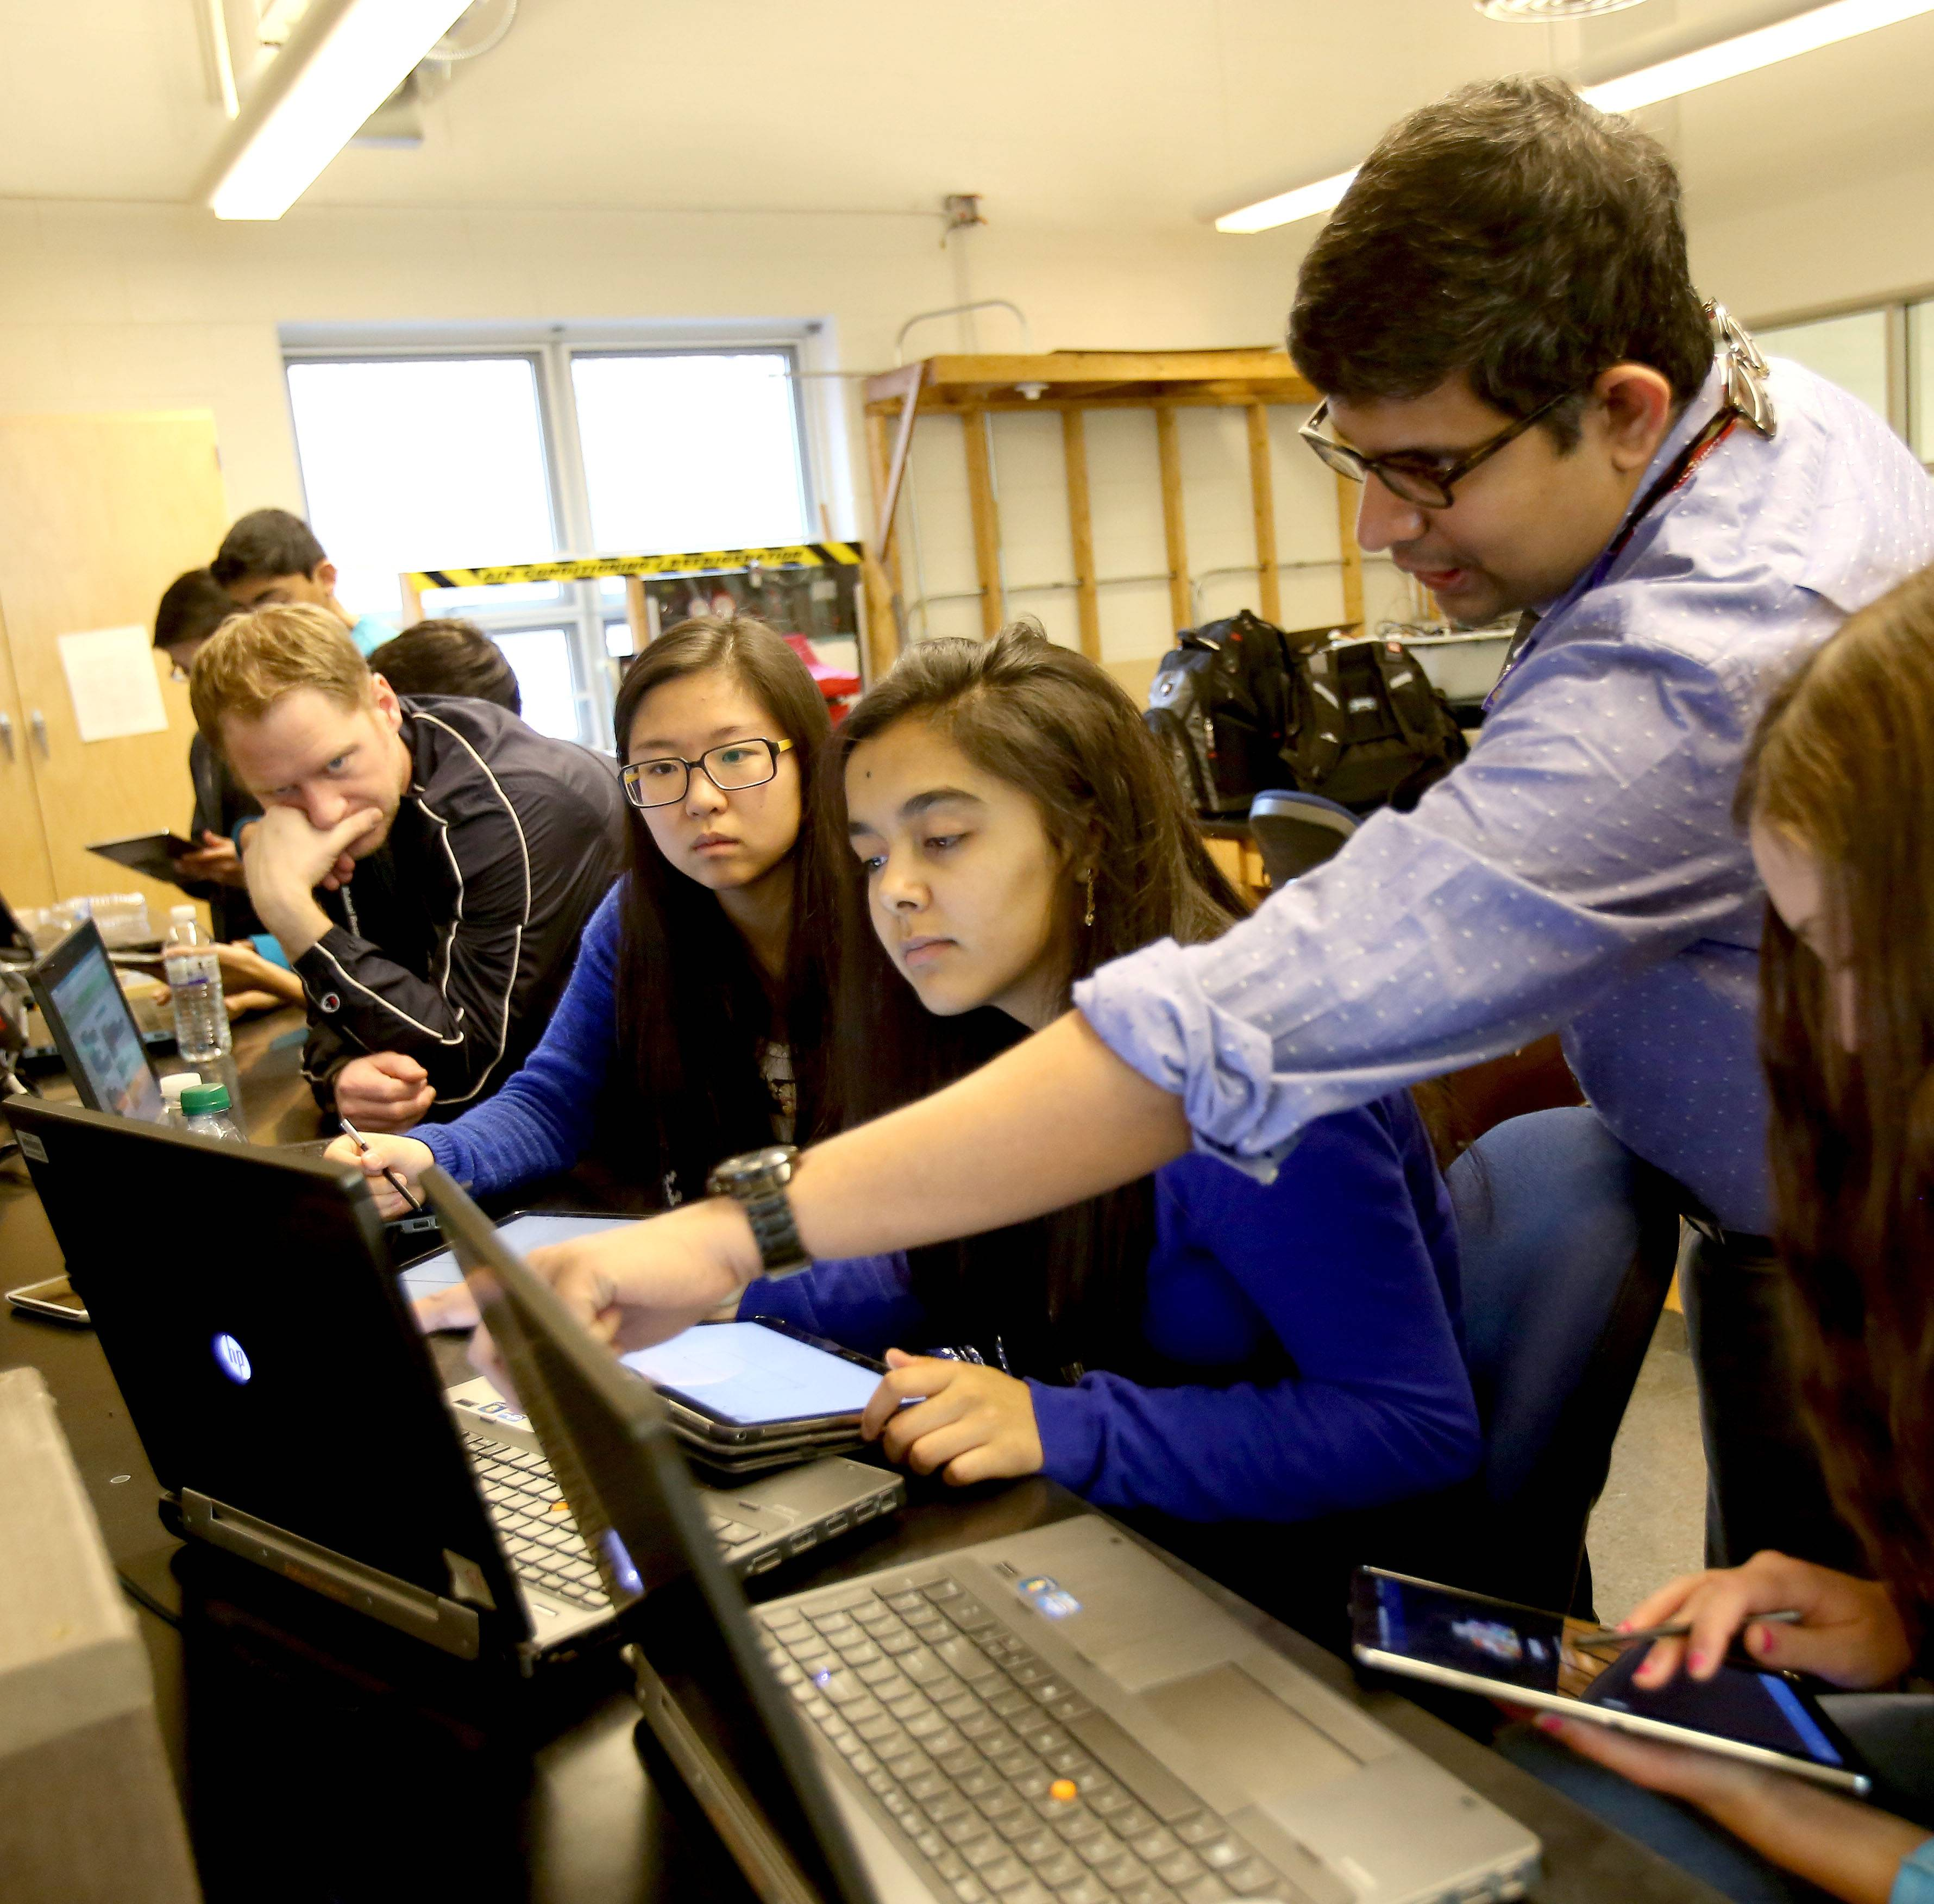 Krishnendu Roy helps Autumn Chung, left, and Aishwarya Jois, center, solve a programming hiccup.